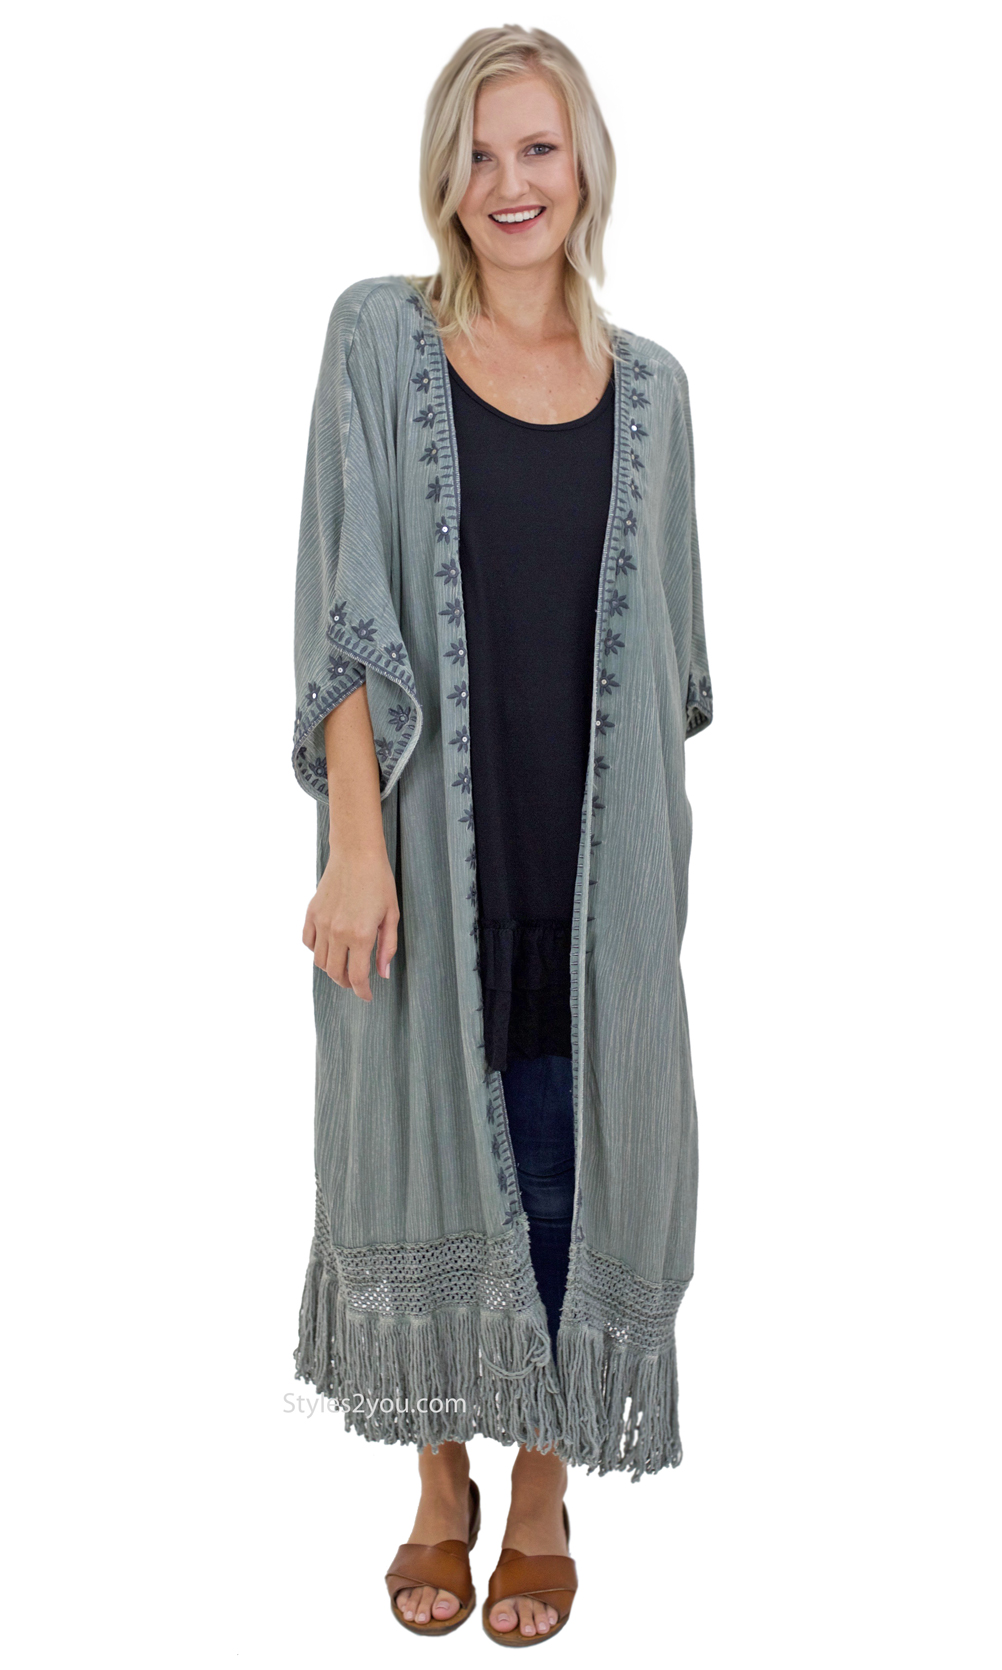 761a1692131 Athens Oversized Embroidered Fringe Trim Duster In Washed Olive ...